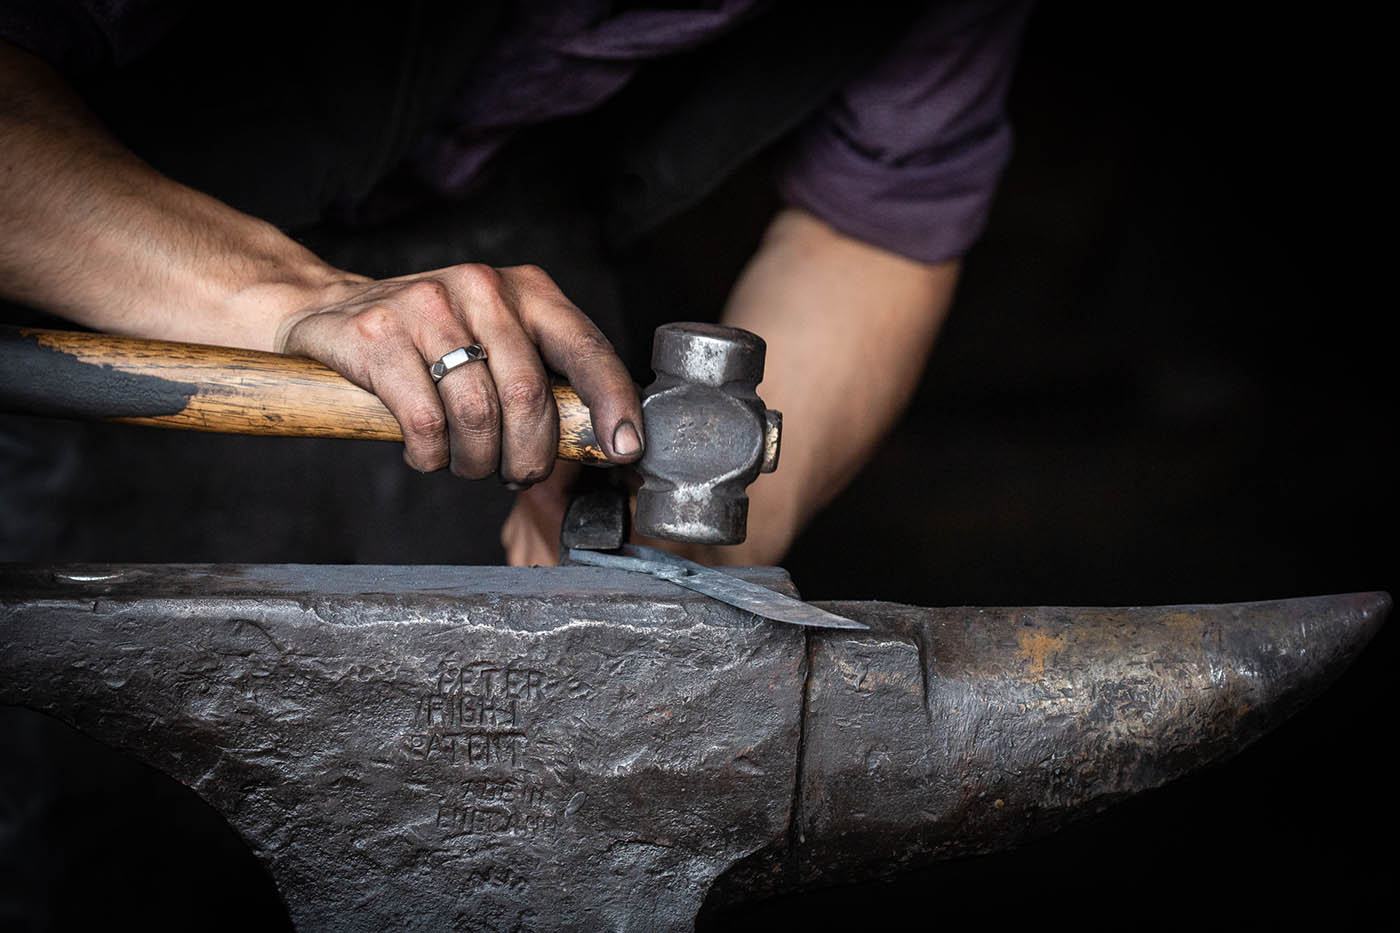 Blacksmith at work during artistic photography workshop, Barkerville, BC, Canada